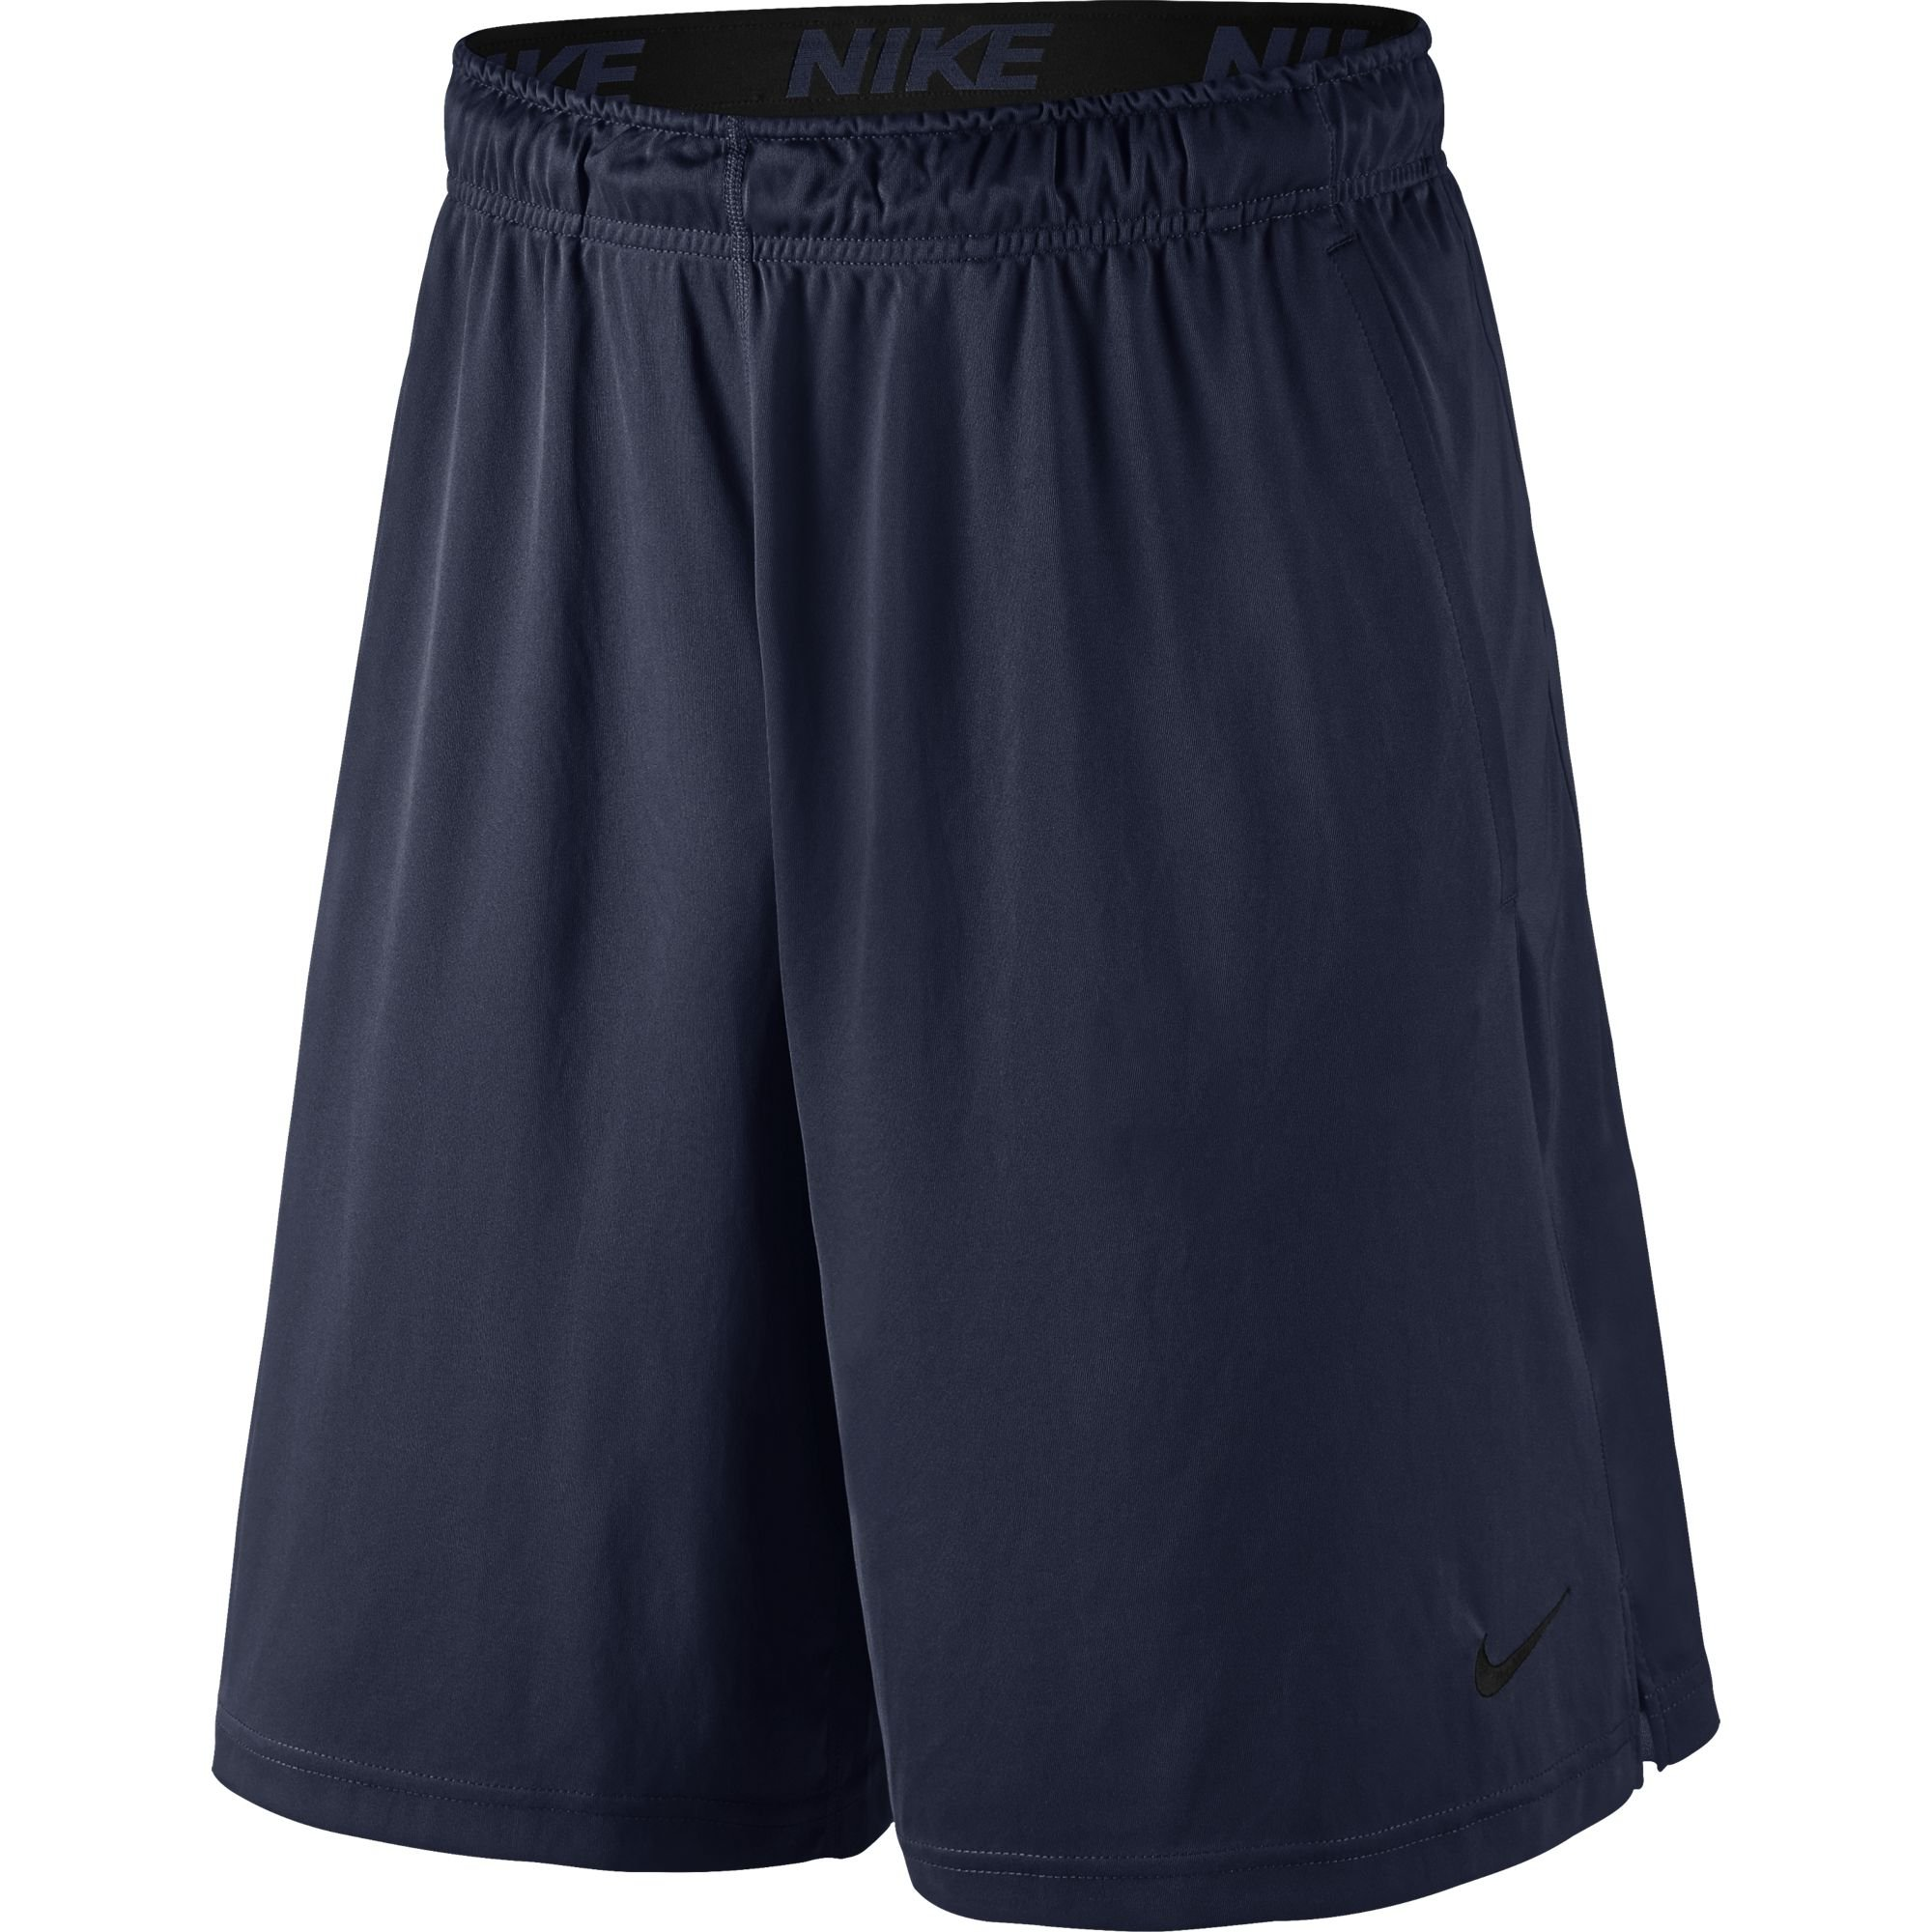 NIKE Men's Dry Fly 9'' Shorts, Obsidian/Black, Large